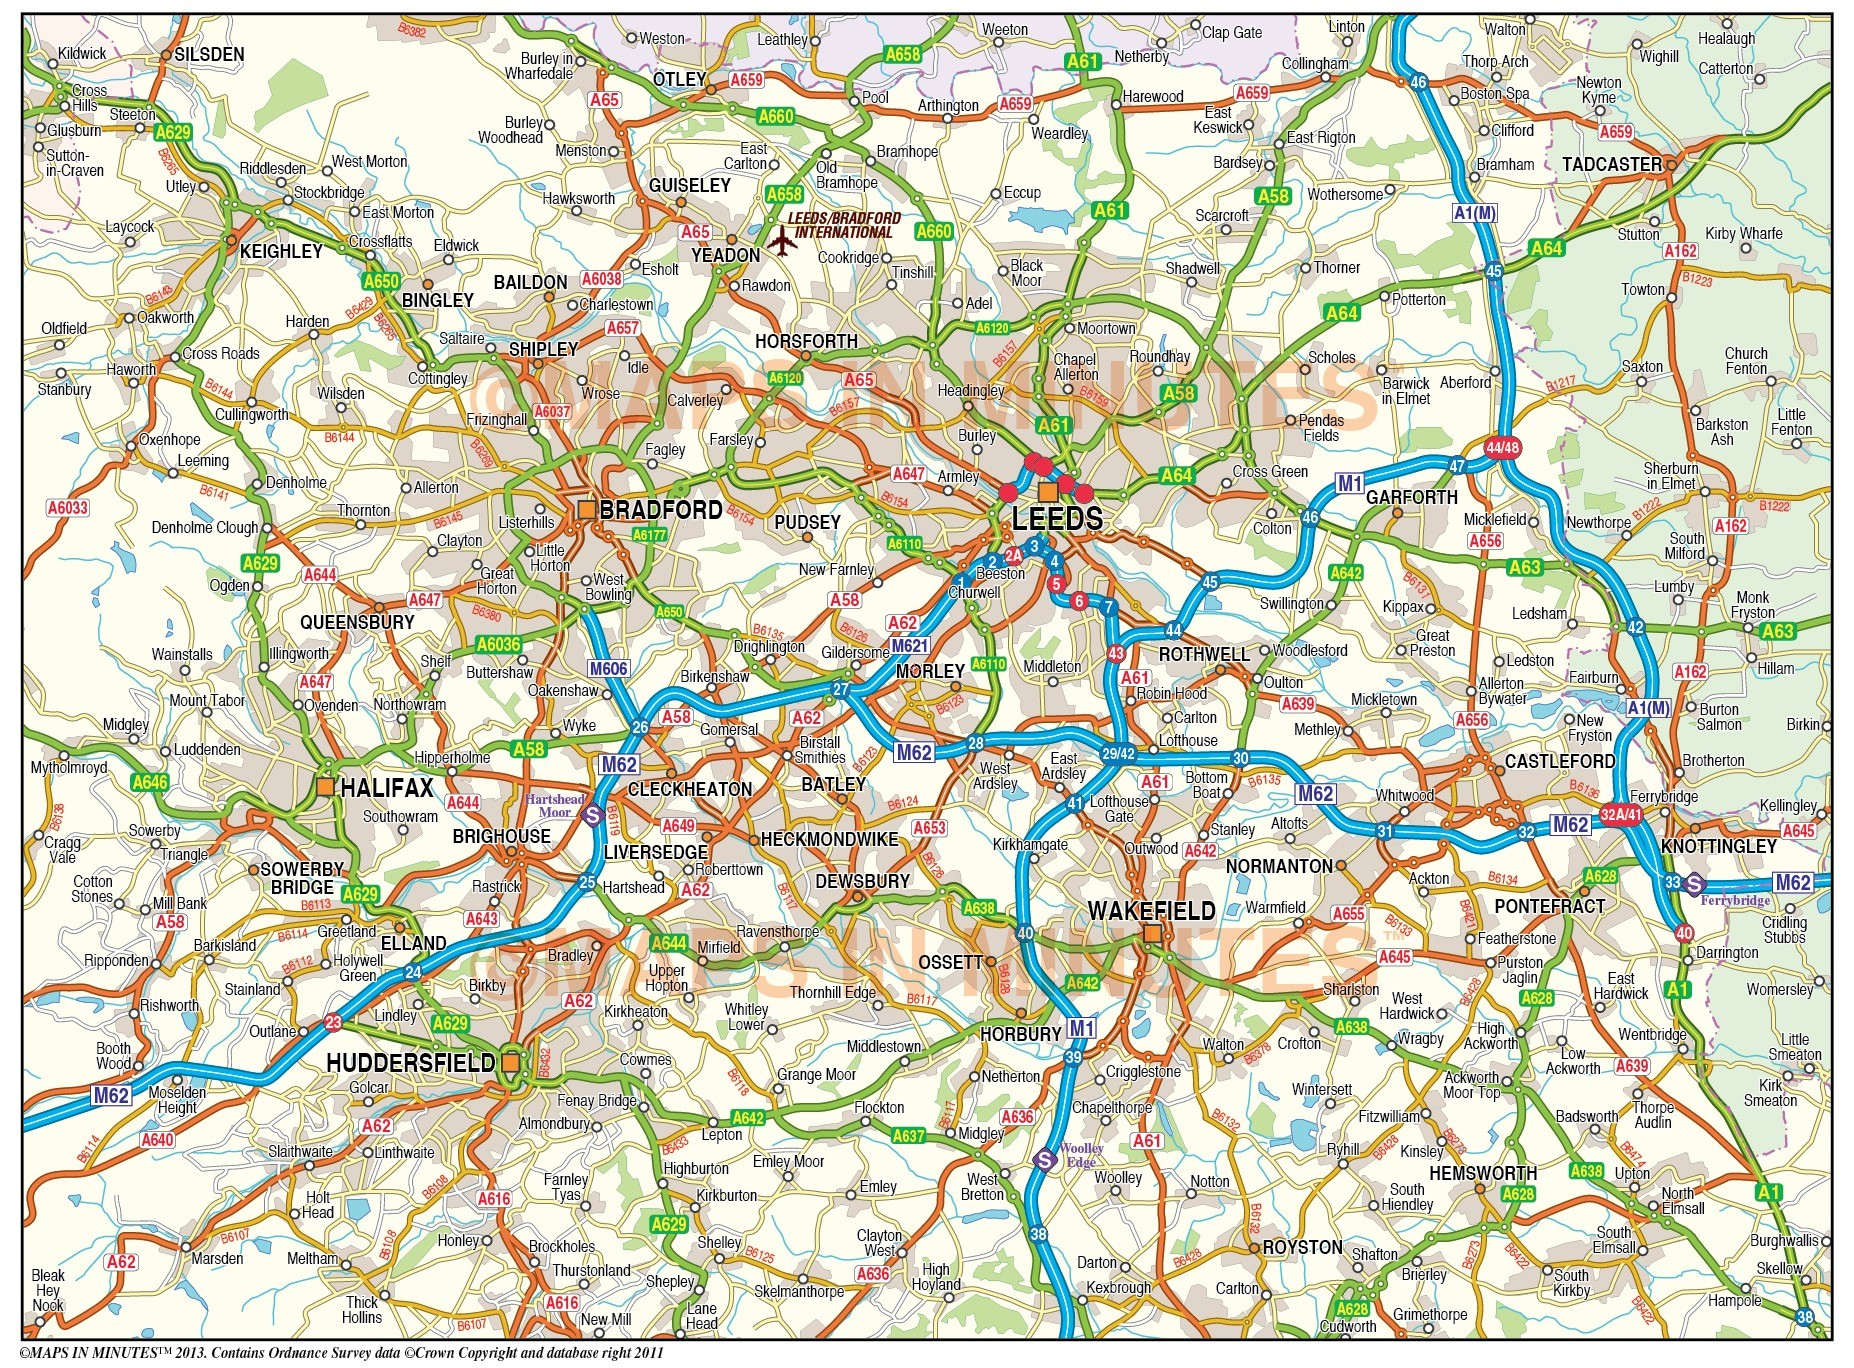 Greater BirminghamCoventry map 250k scale in Illustrator CS format